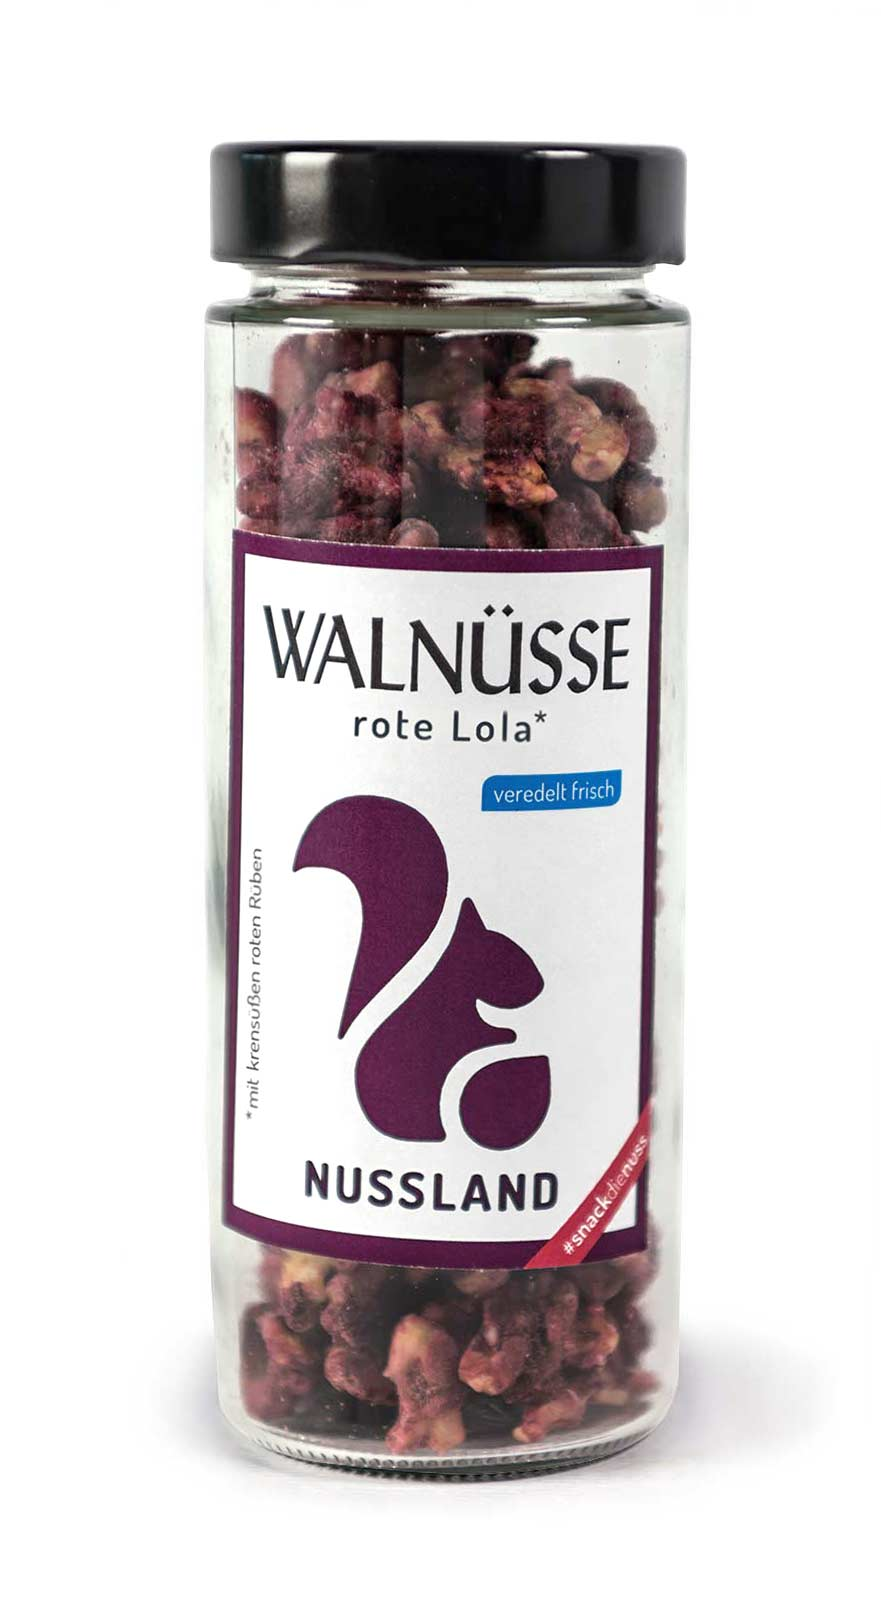 Walnuss-Snack 'rote Lola'